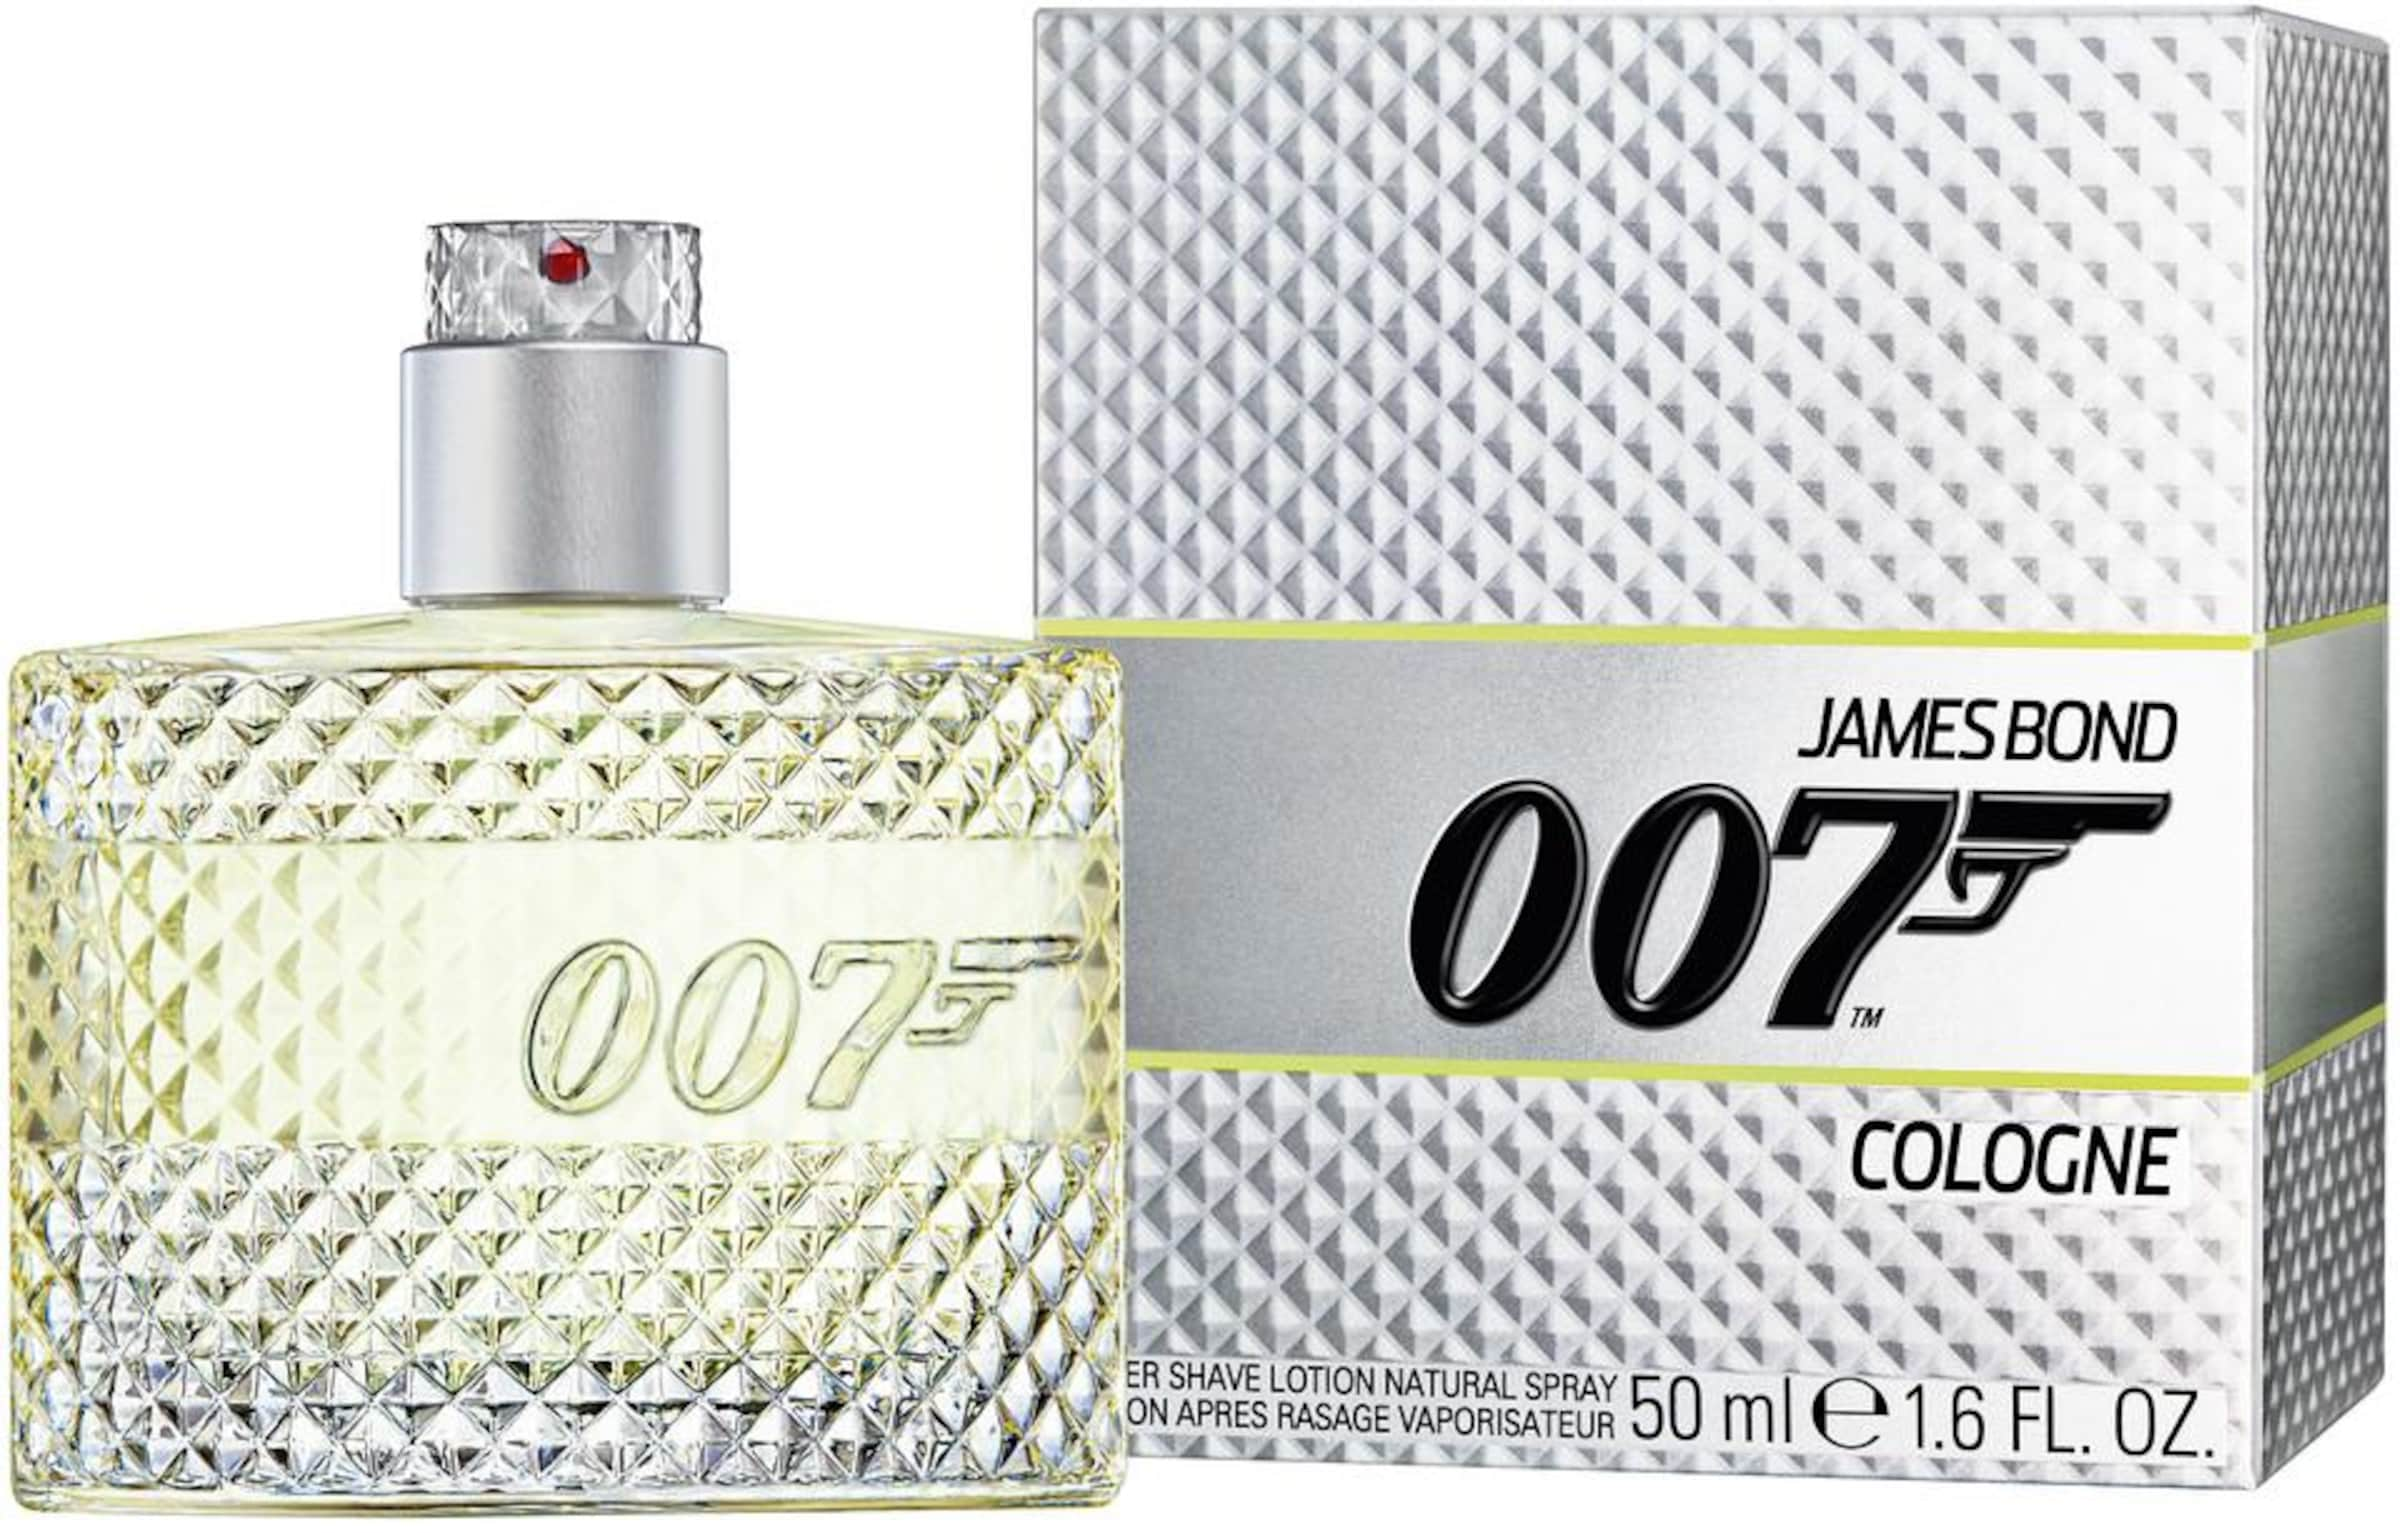 In James Aftershave Bond 'cologne' HellgelbRauchgrau 007 nwOkX80P